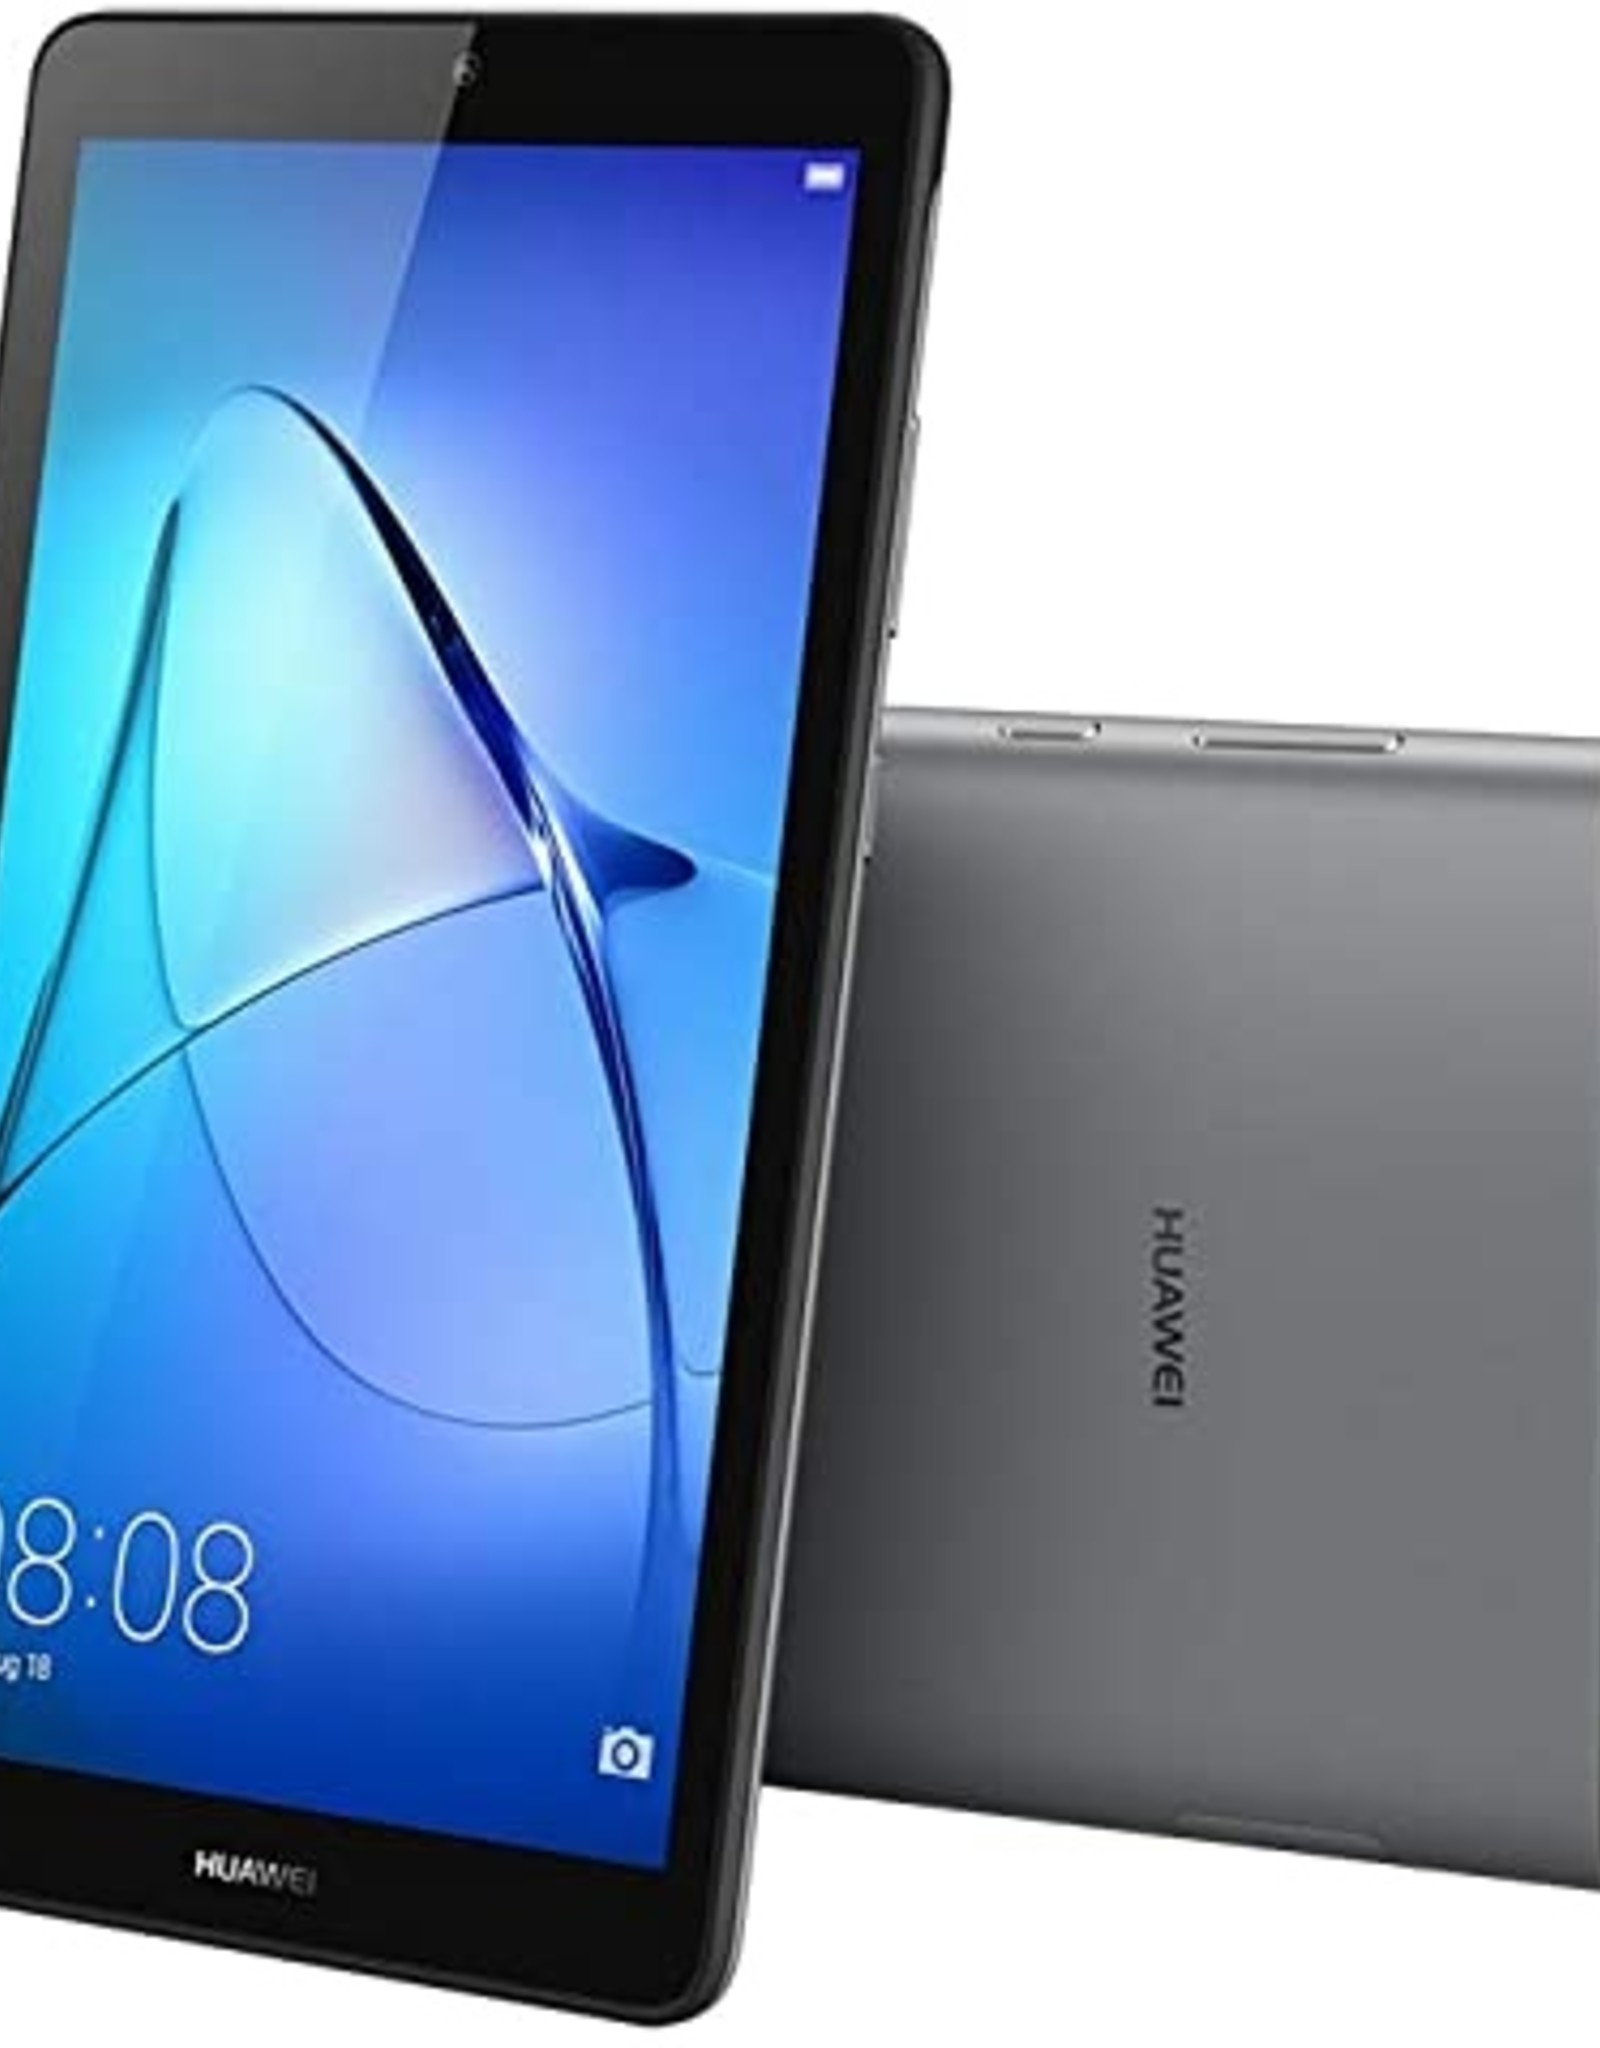 Huawei Huawei Tablet 53018231 Mediapad T3 7 inch IPS QC1.3Ghz 1GB 16GB 2MP F/R Android 6 Gray 53018231